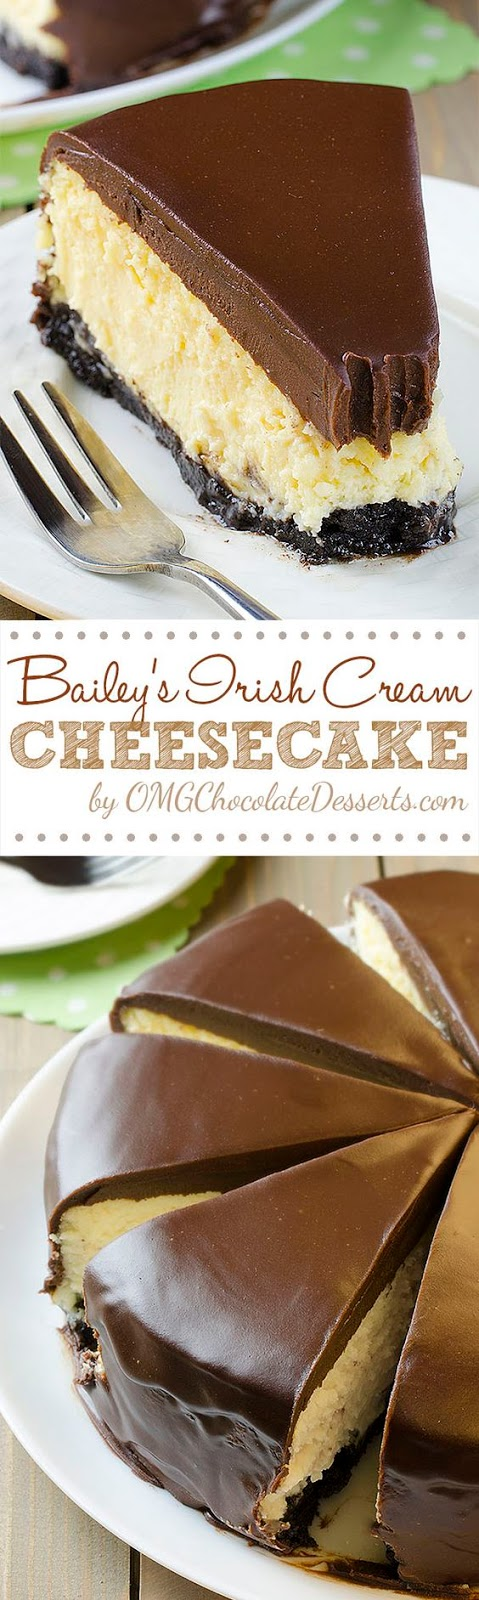 OK, to be honest, I'm not a great fan of desserts with the taste of liquor and alcohol until I tried this great Bailey's Irish Cream cheesecake which made me change my opinion.  Cheesecake was always my first choice when dessert for any occasion comes into consideration. If it was a cake or a mini version – cheesecake cupcakes, bake or no bake recipes, it is always my favorite. There is no cheesecake that I haven't made multiple times: Reese's, chocolate, Nutella, strawberry, pumpkin, peanut butter… but I always avoided Irish Cream.